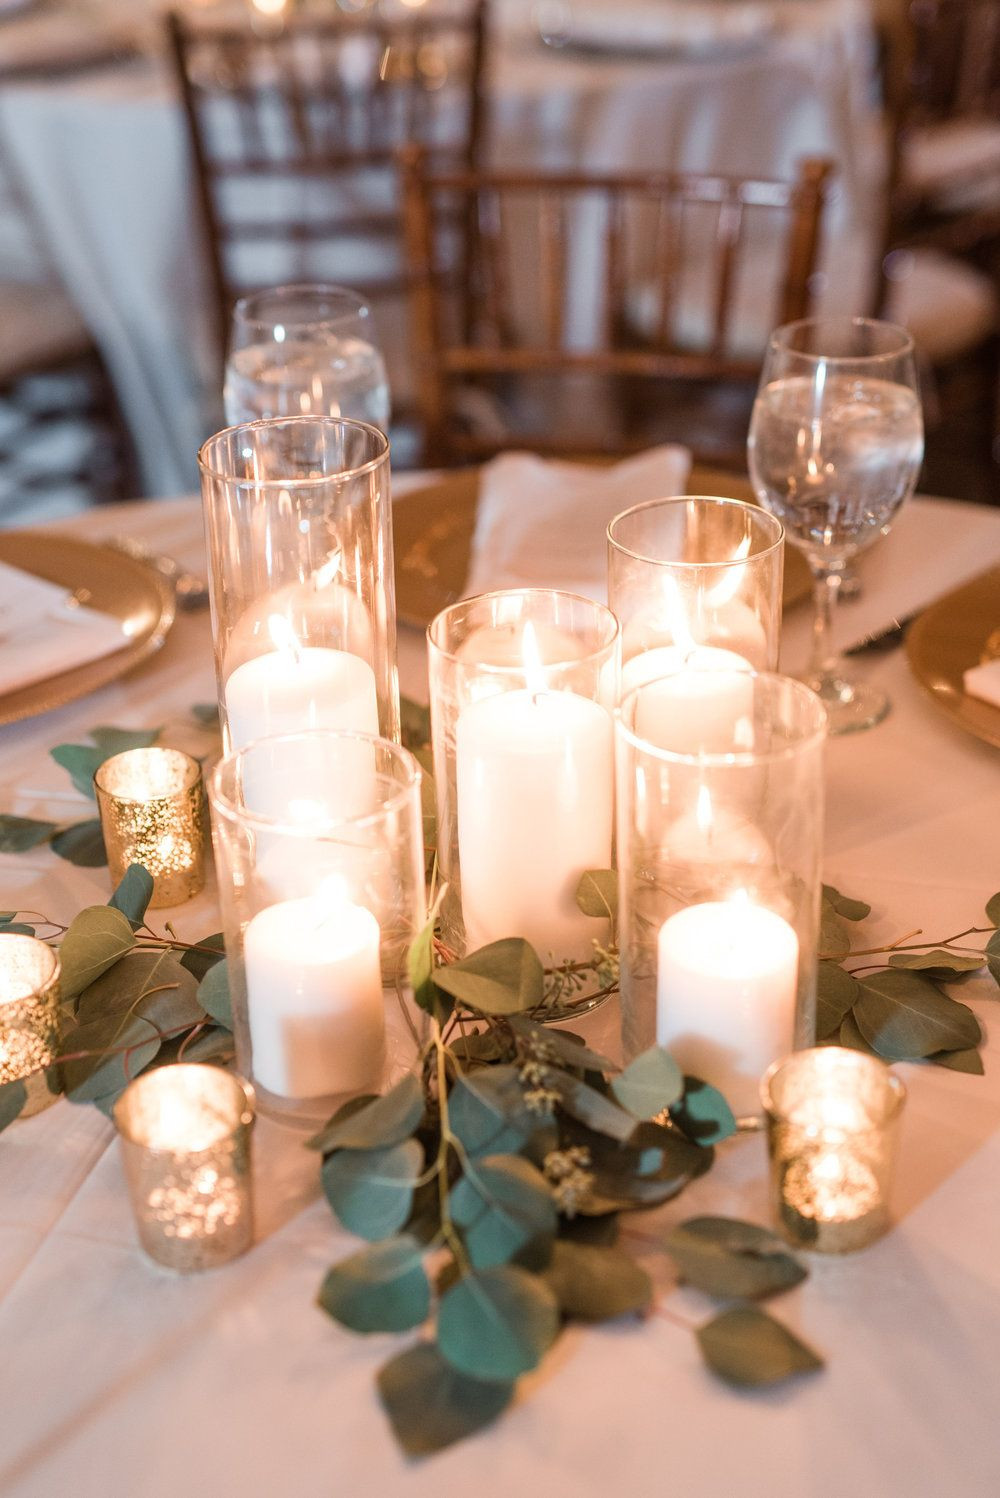 tall skinny vases for centerpieces of jessica johns early mountain vineyard wedding floral inside romantic candlelit pillar candle centerpiece with eucalyptus greenery and gold mercury glass votives for a winery